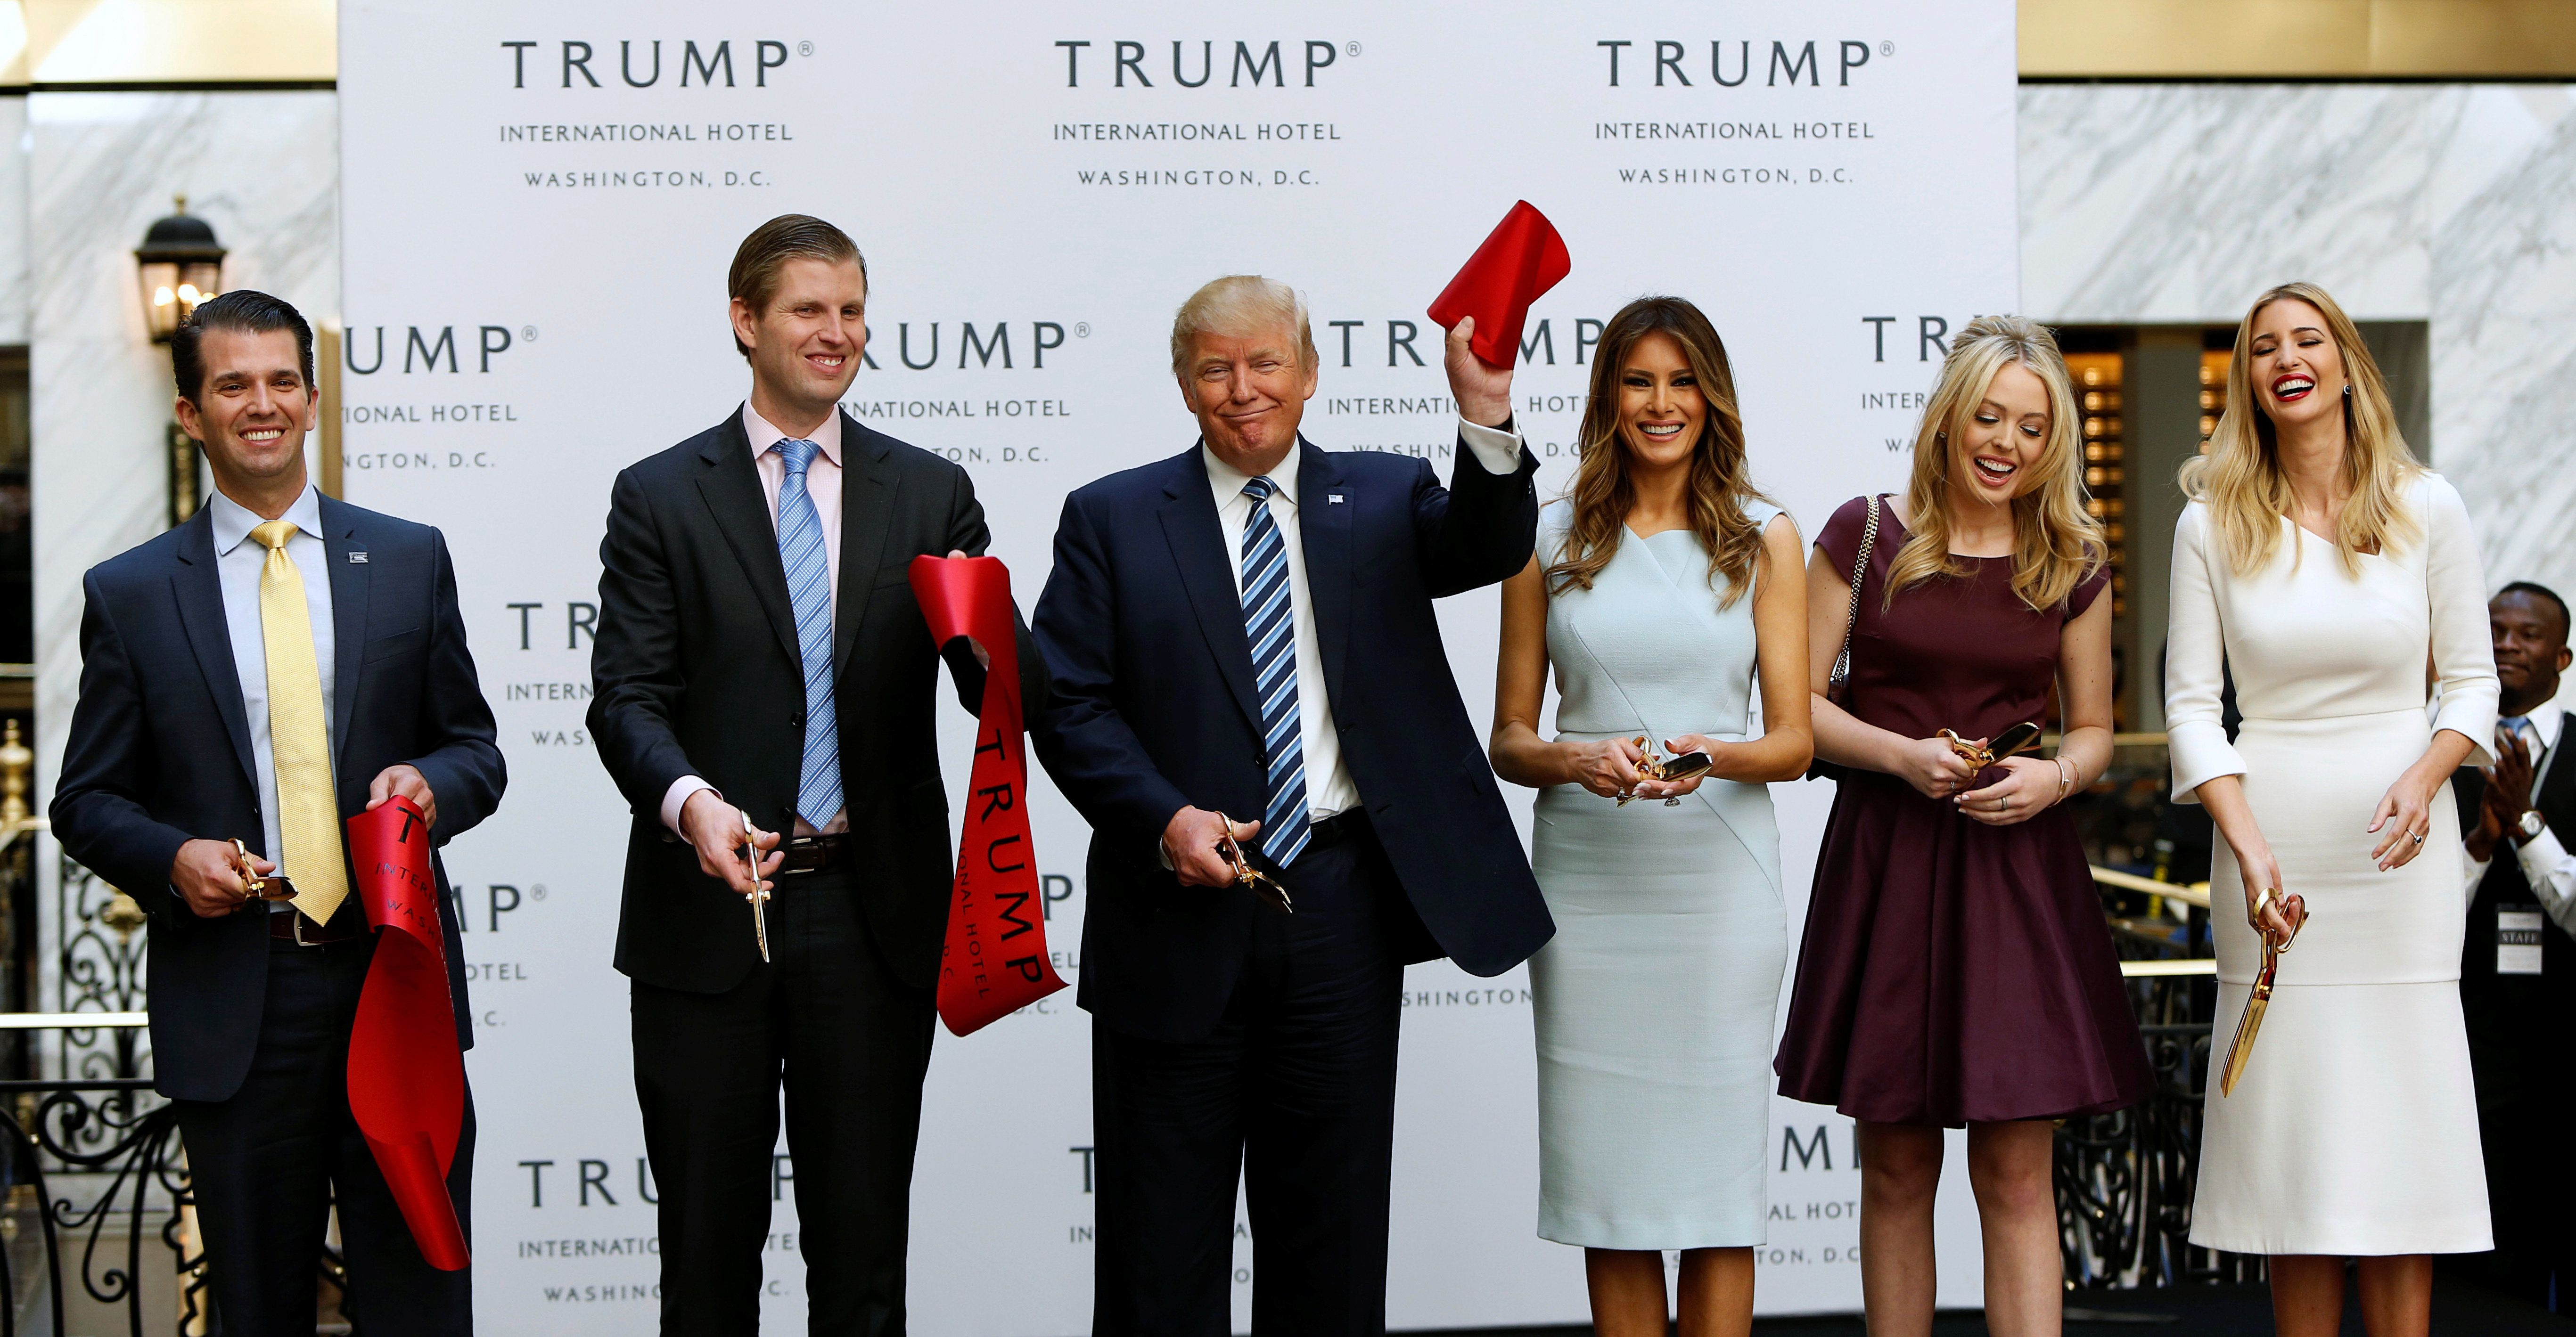 Trump's new DC hotel turning a profit